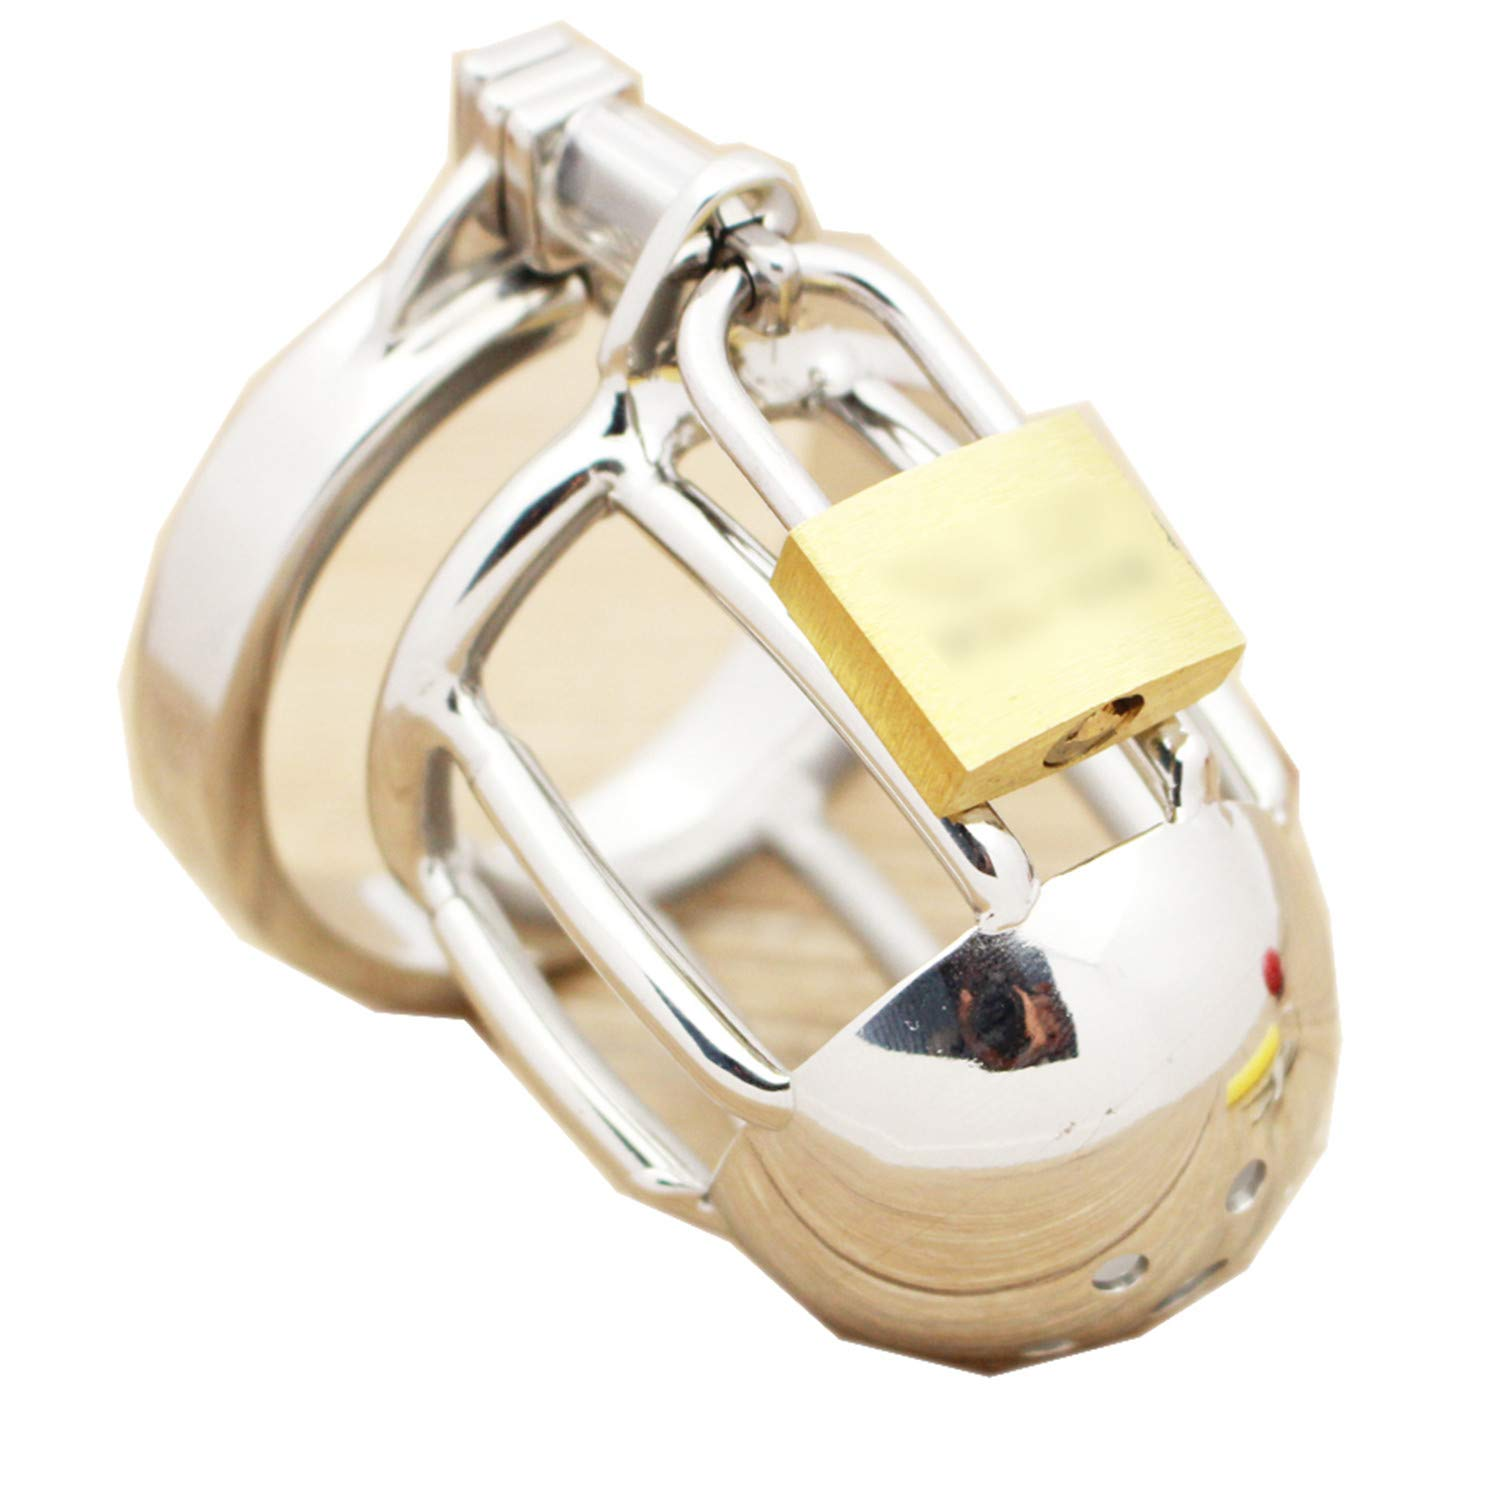 sensitives Lovely Sale Speculum Sex Products Penis Cage, Male Chastity Device. Boyfriend is Not Derailed Artifact.Sex Toys Stainless Steel 50mm